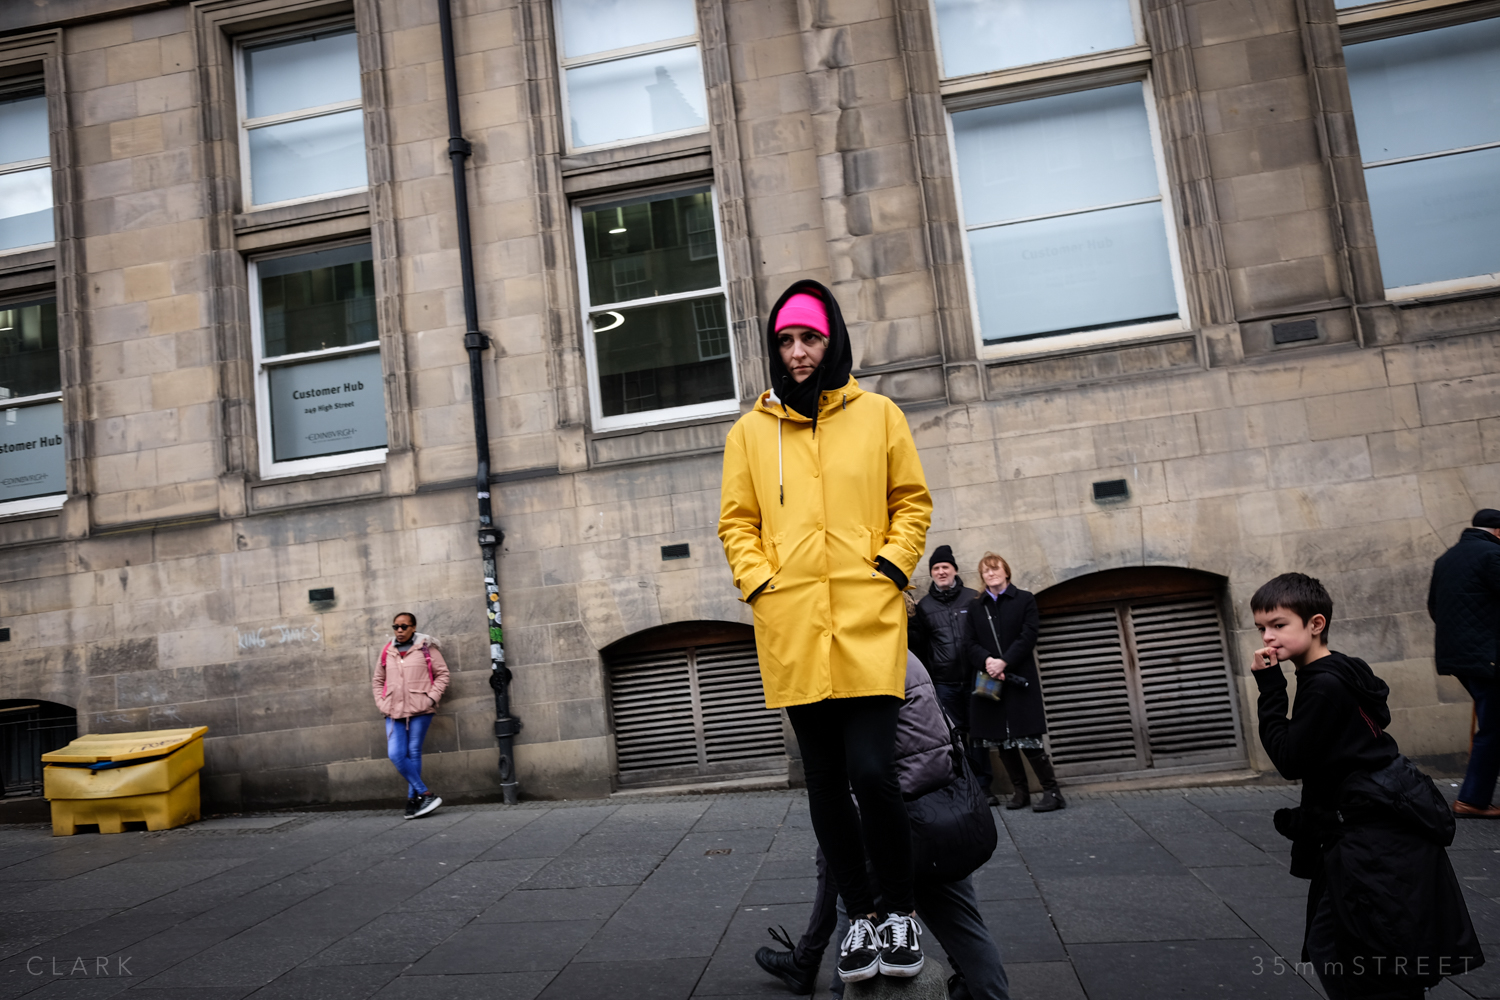 007_35mmStreet-Edinburgh-Street-Photography-20190404.jpg